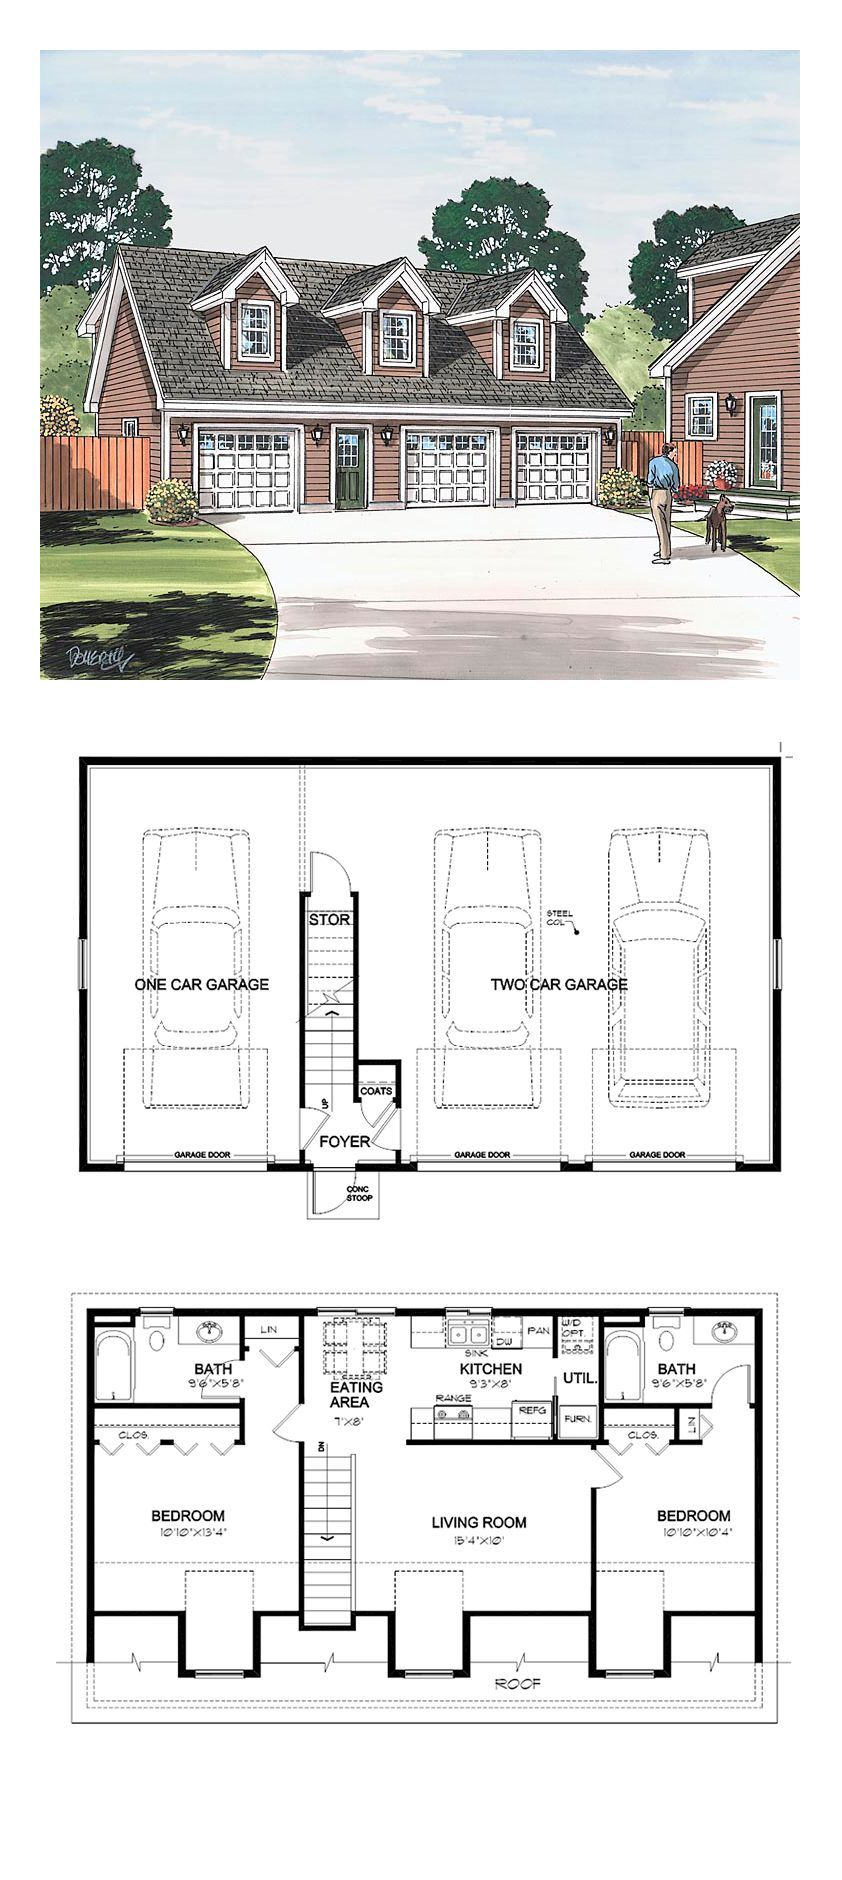 Garage apartment plan 30032 total living area 887 sq ft 2